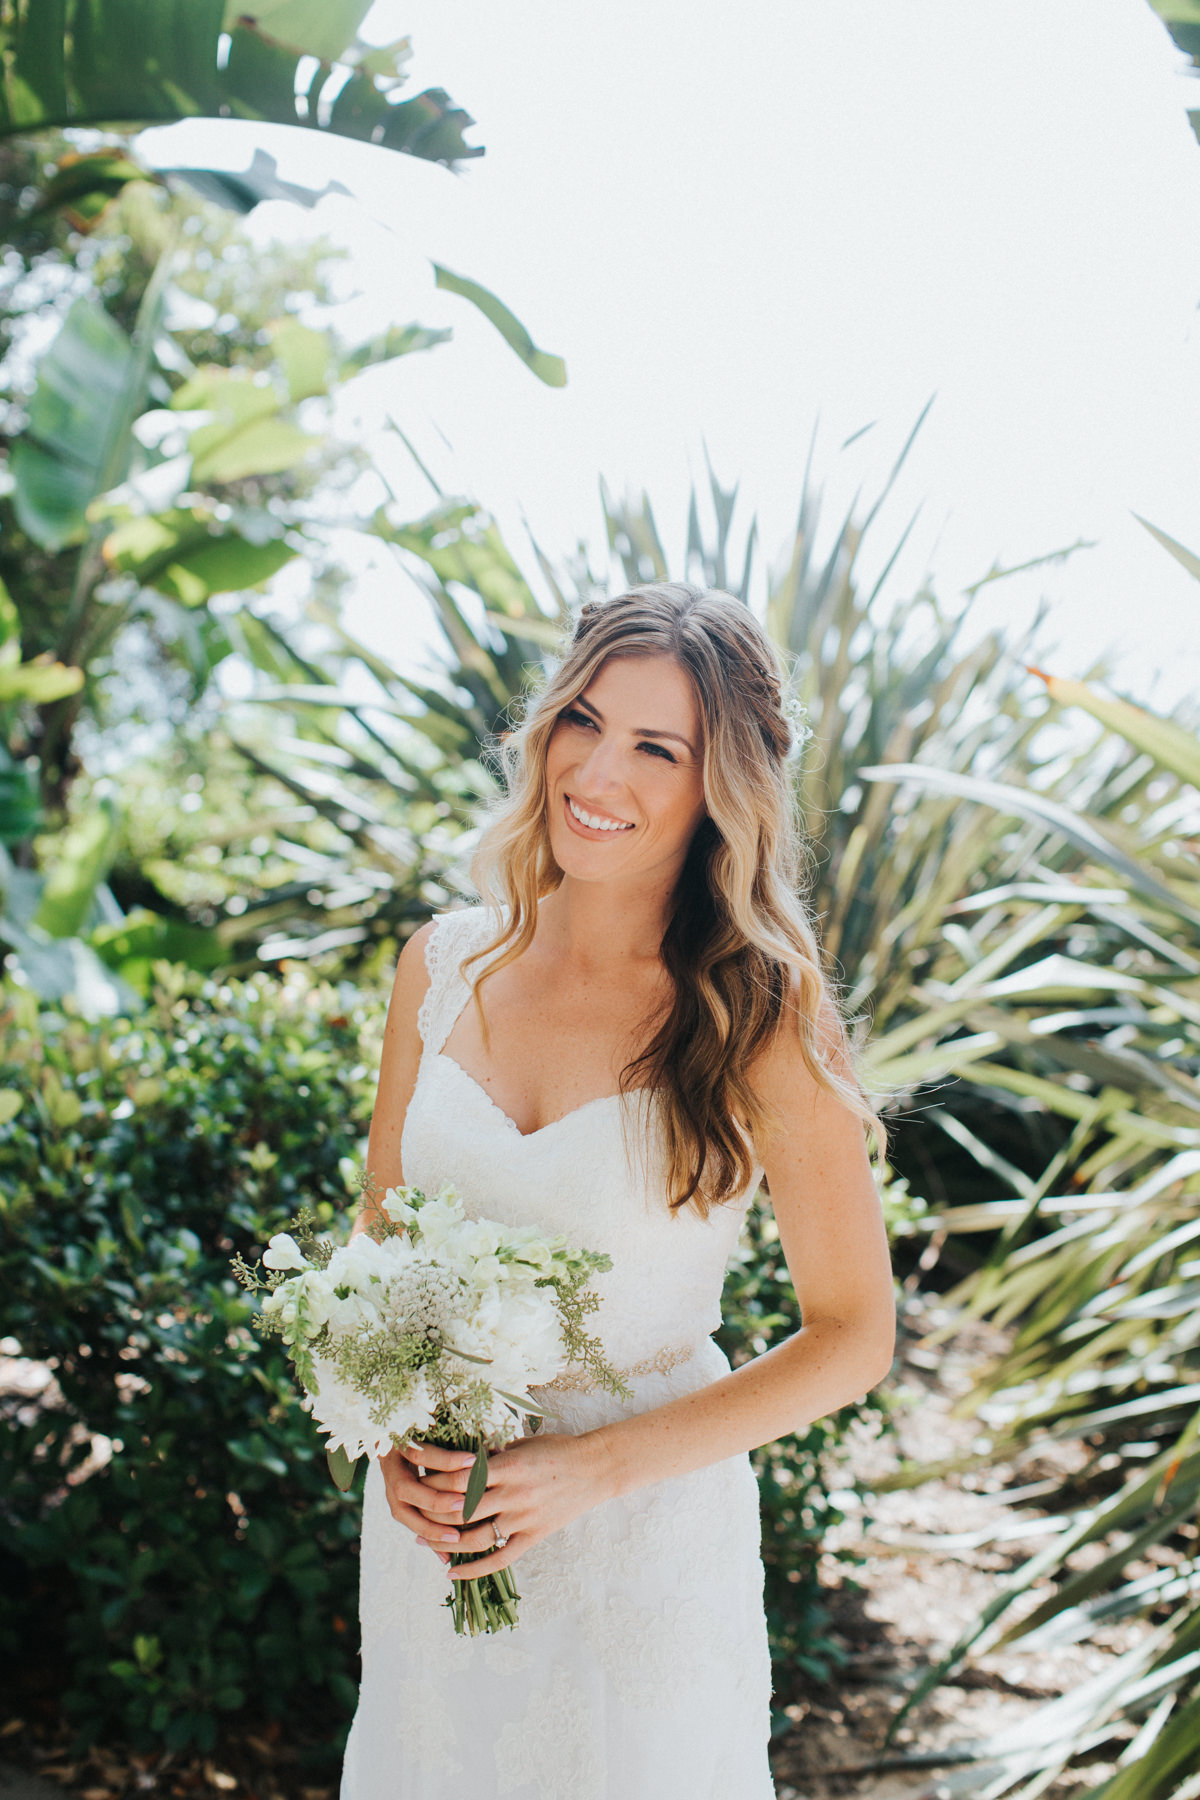 Hotel Laguna Beach Wedding Elopement San Diego OC Portrait + Wedding Photographer Martina Micko Photo 0008